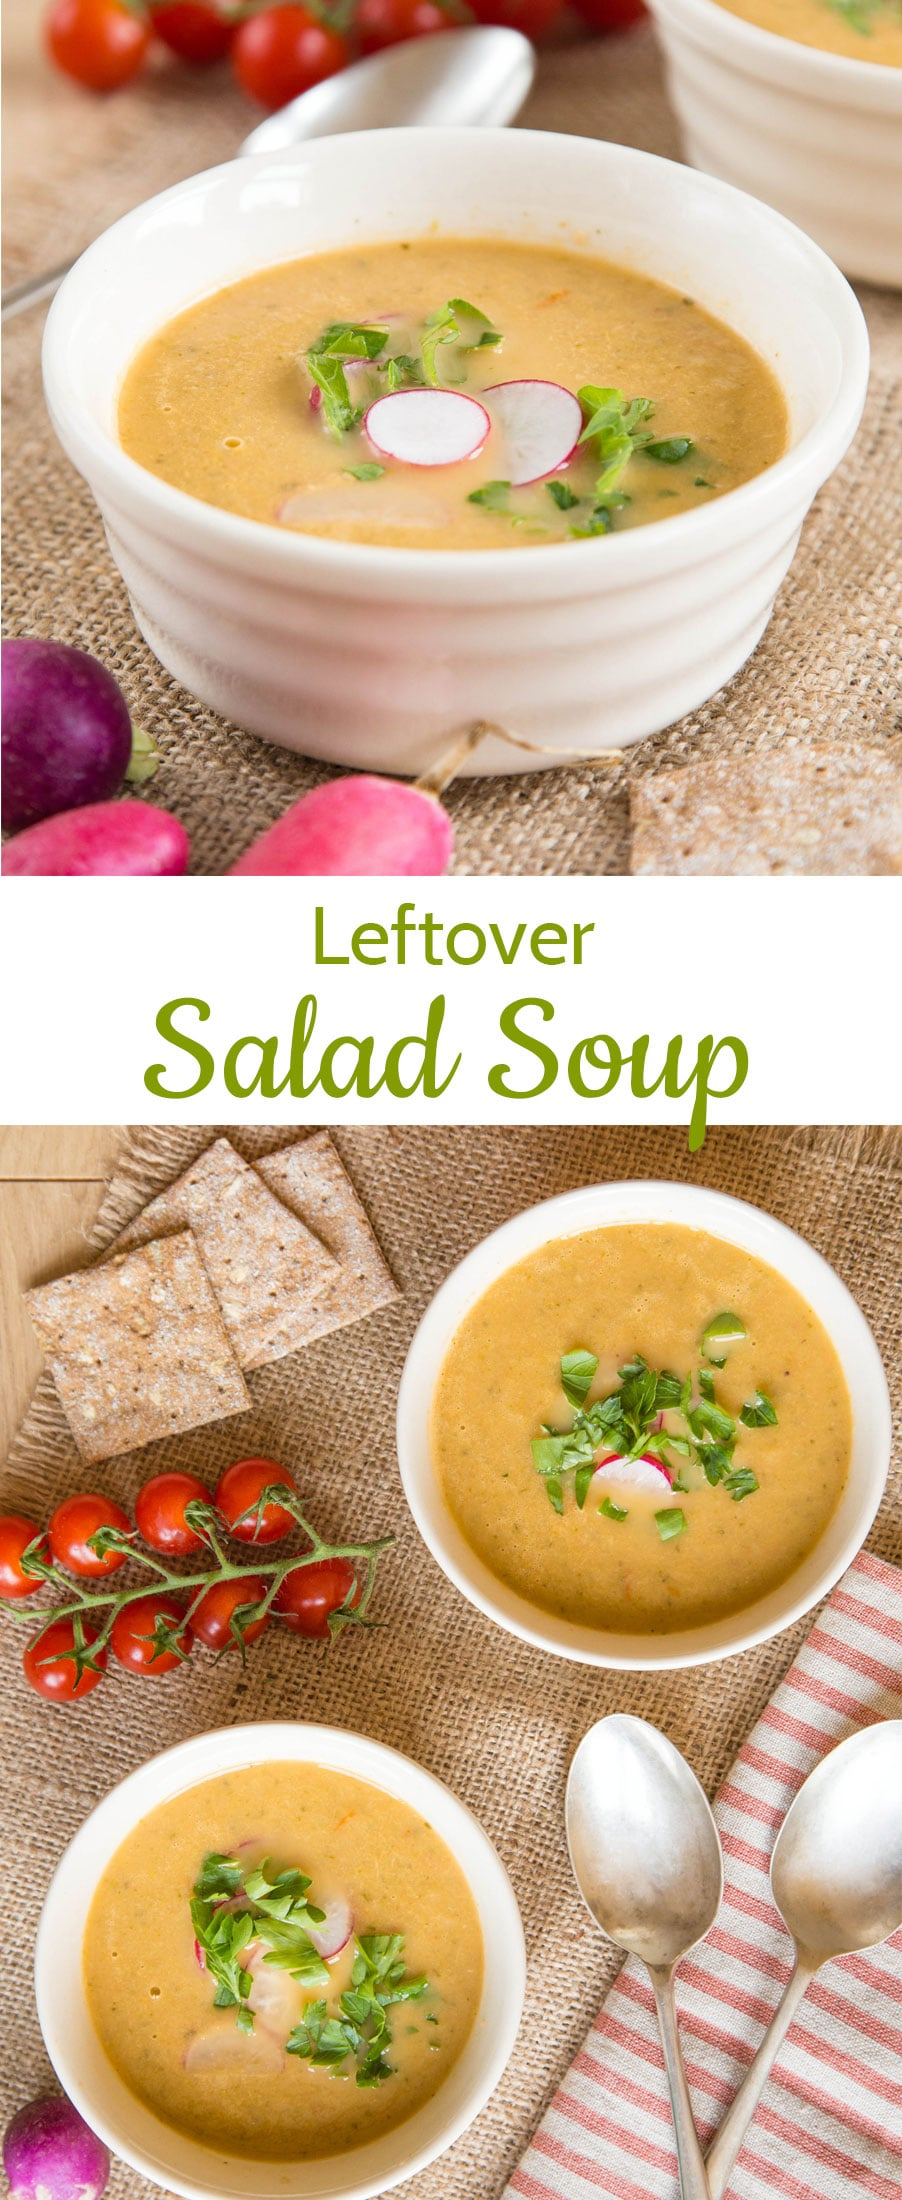 This delicious leftover salad soup is the perfect answer when wondering what to do when you havetoo muchdressed salad. It's quick and easy to make, tastes great and cuts food waste too.